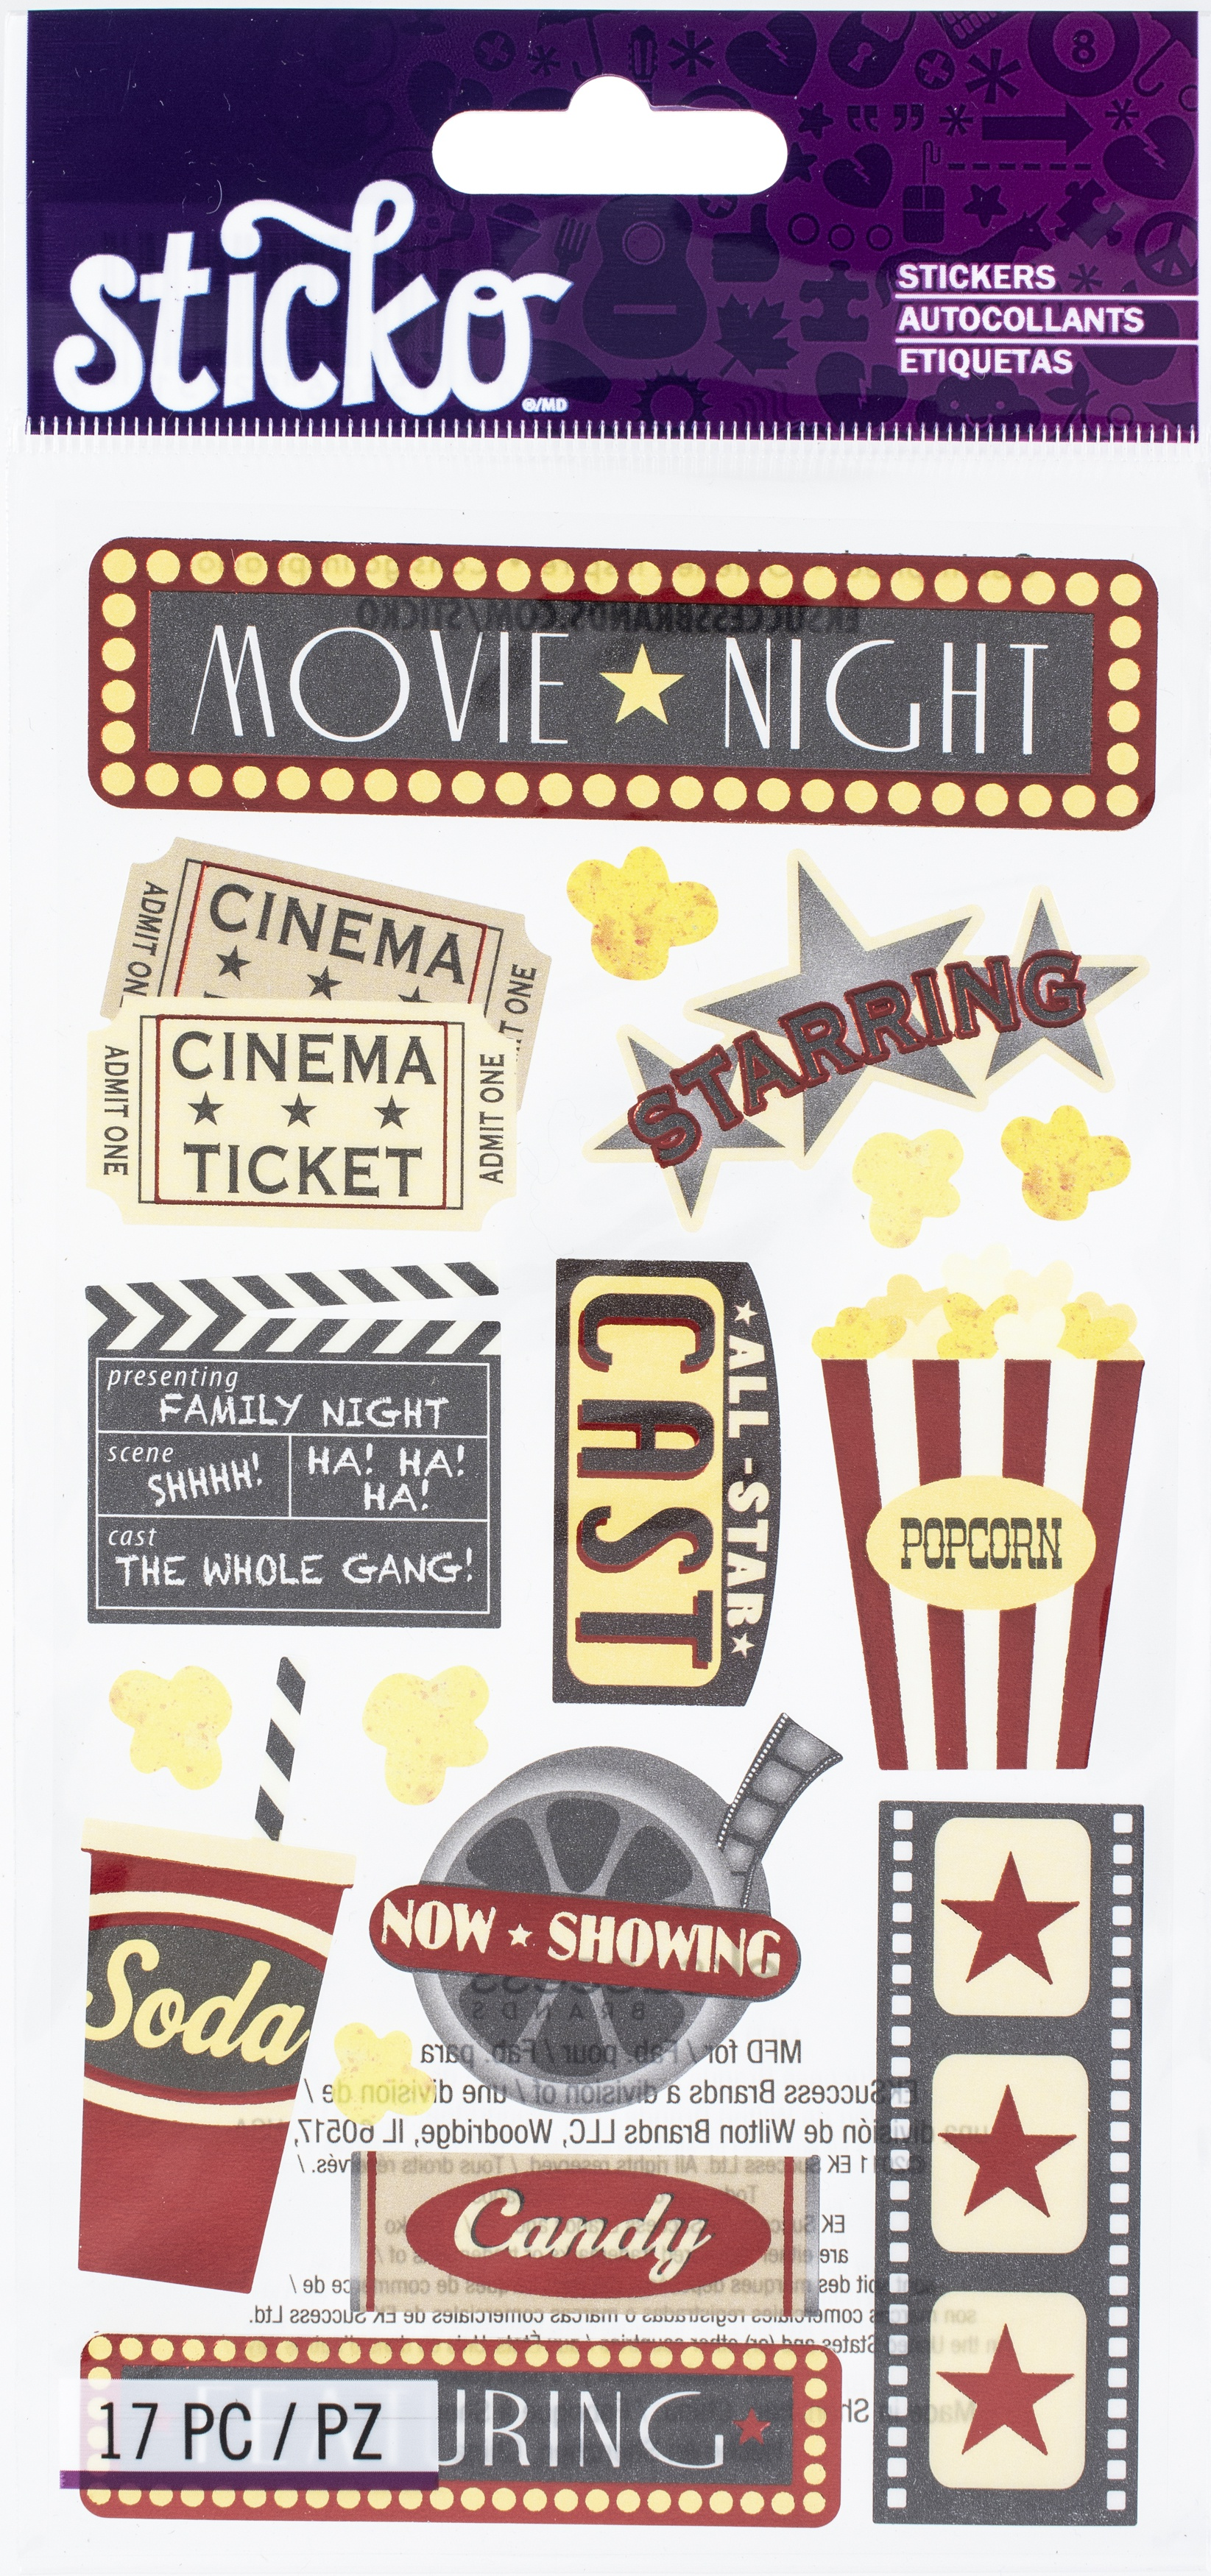 Sticko Stickers-Movie Night